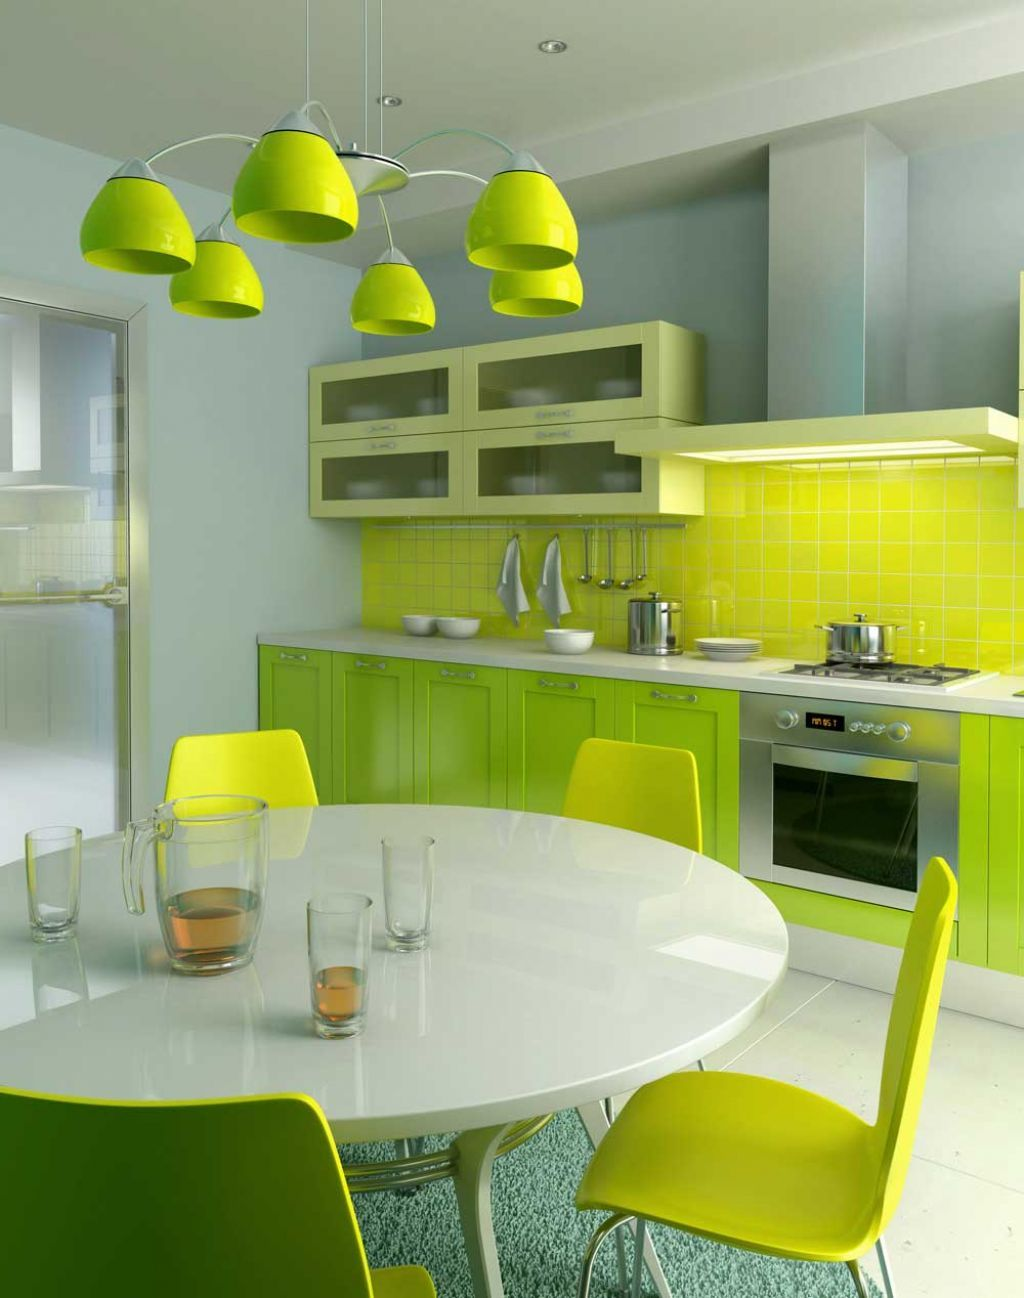 Mural Of Color Your Modern Minimalist Kitchen With Soft Light Acrylic  Backsplash For A Live Tone